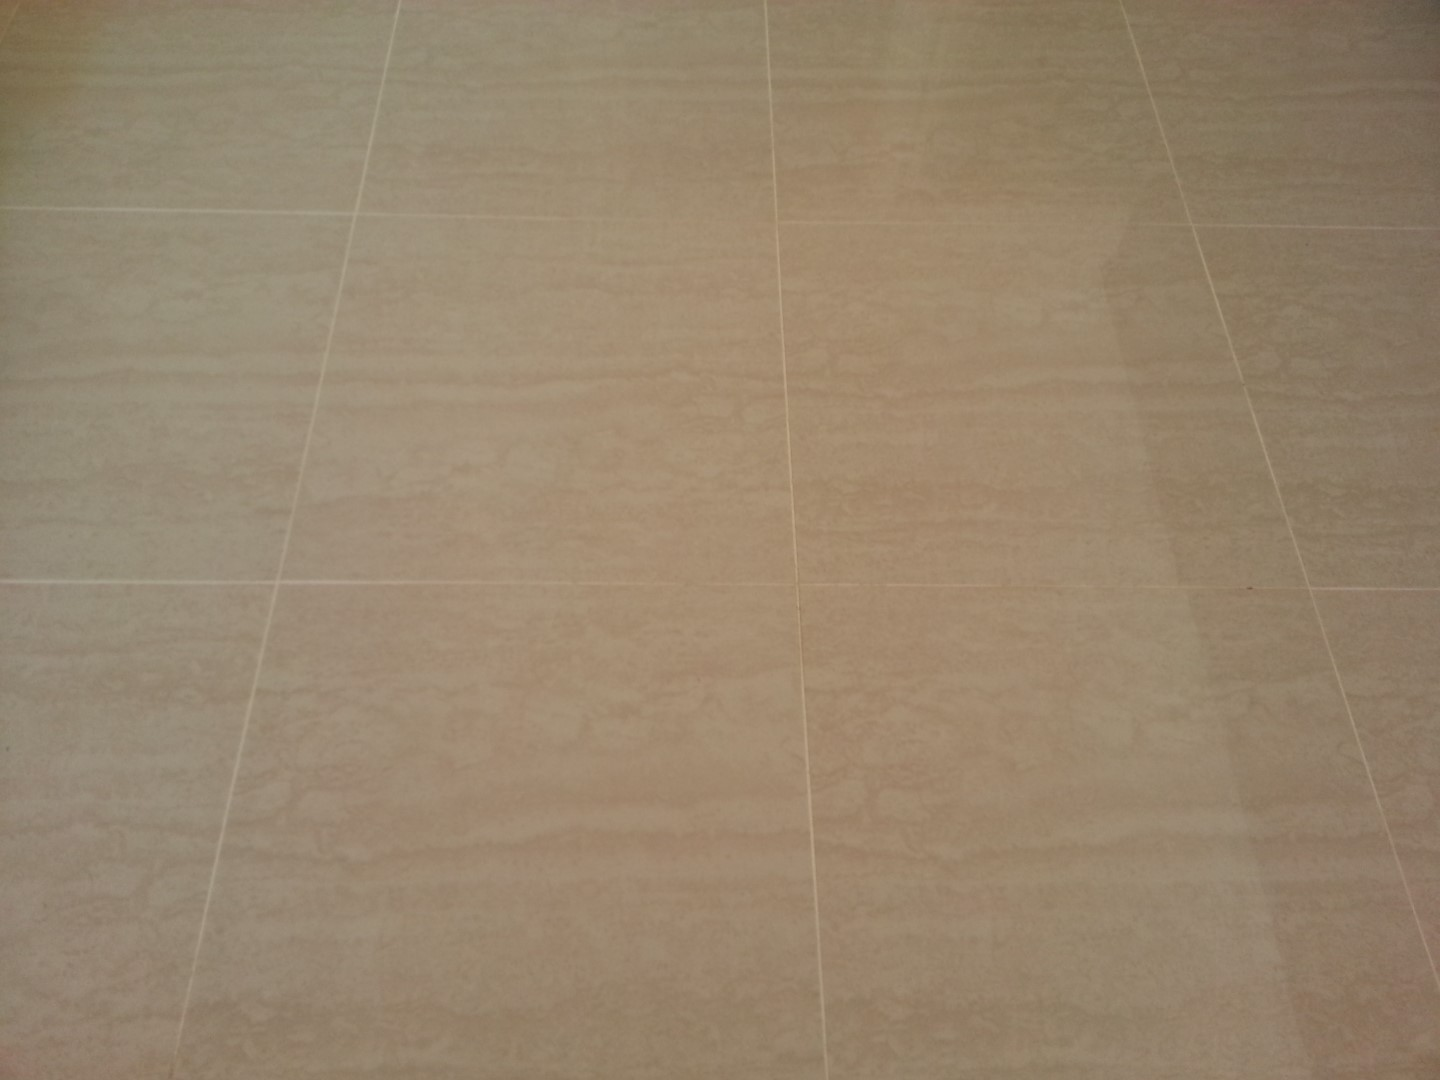 Porcelain Floor Tile Cleaning and Sealing